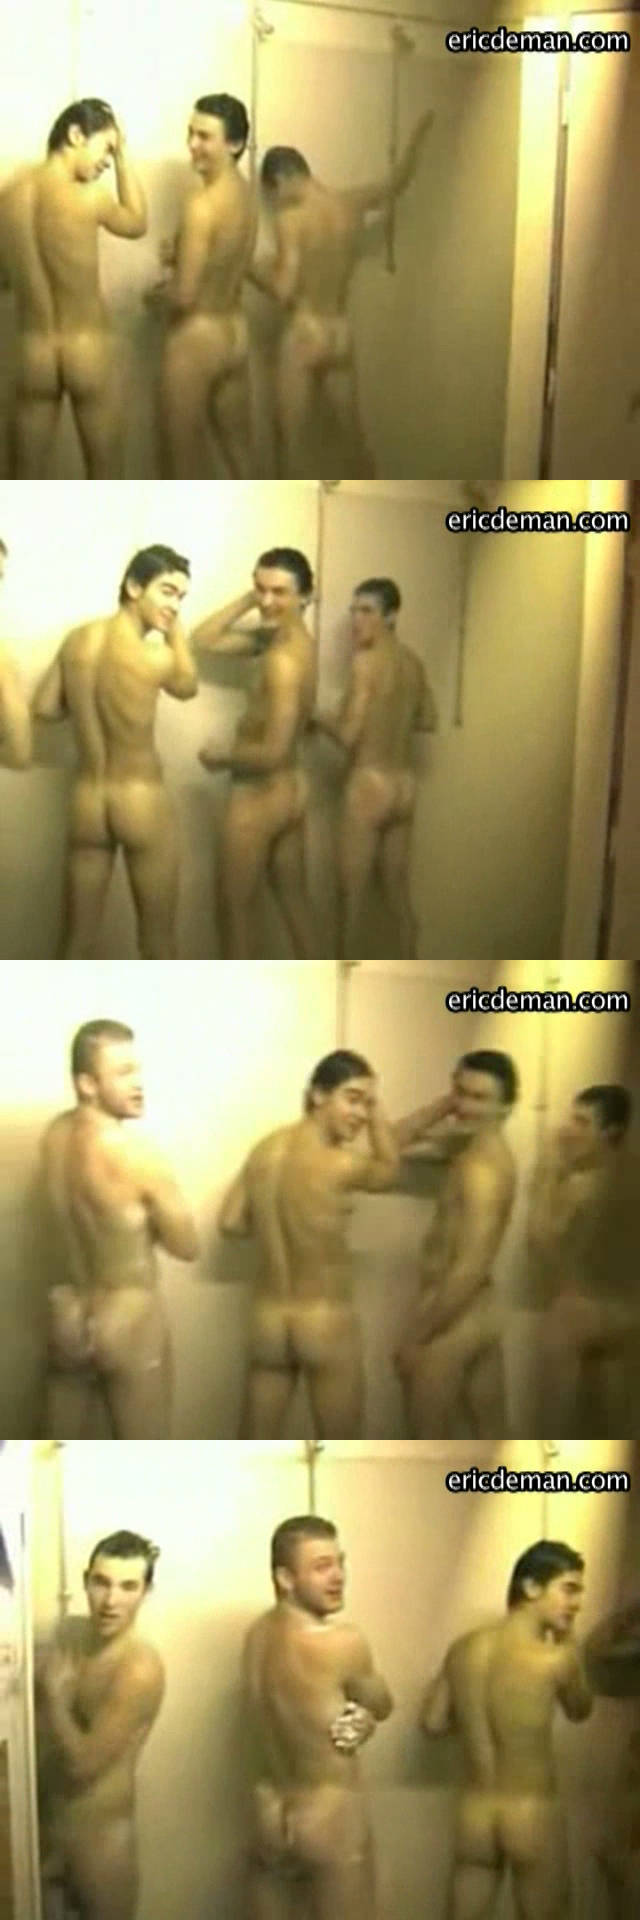 rugby players naked guys taking a video in the shower